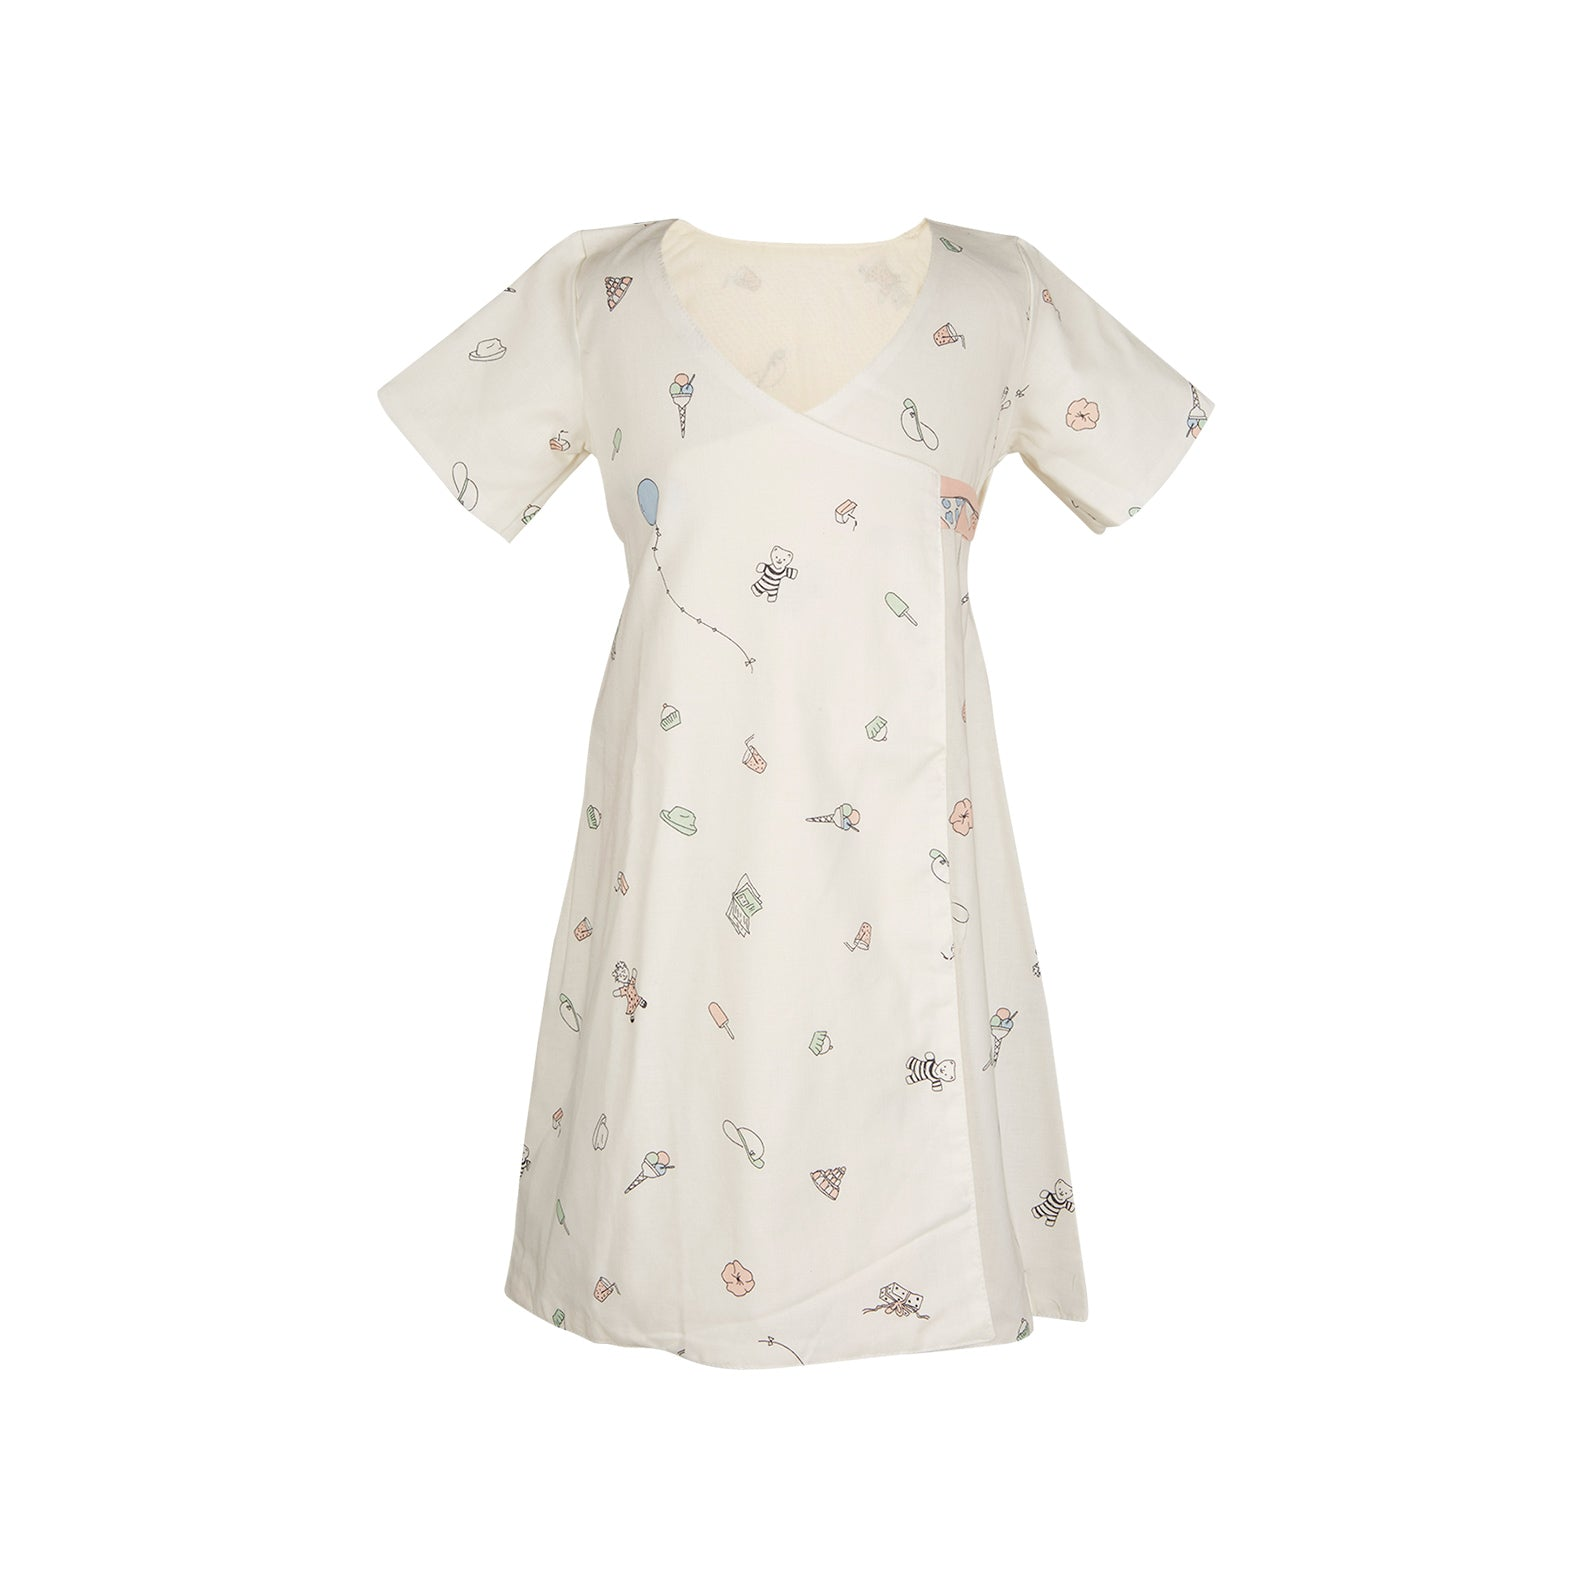 Archive sale - Junko dress birthday bash cream pink